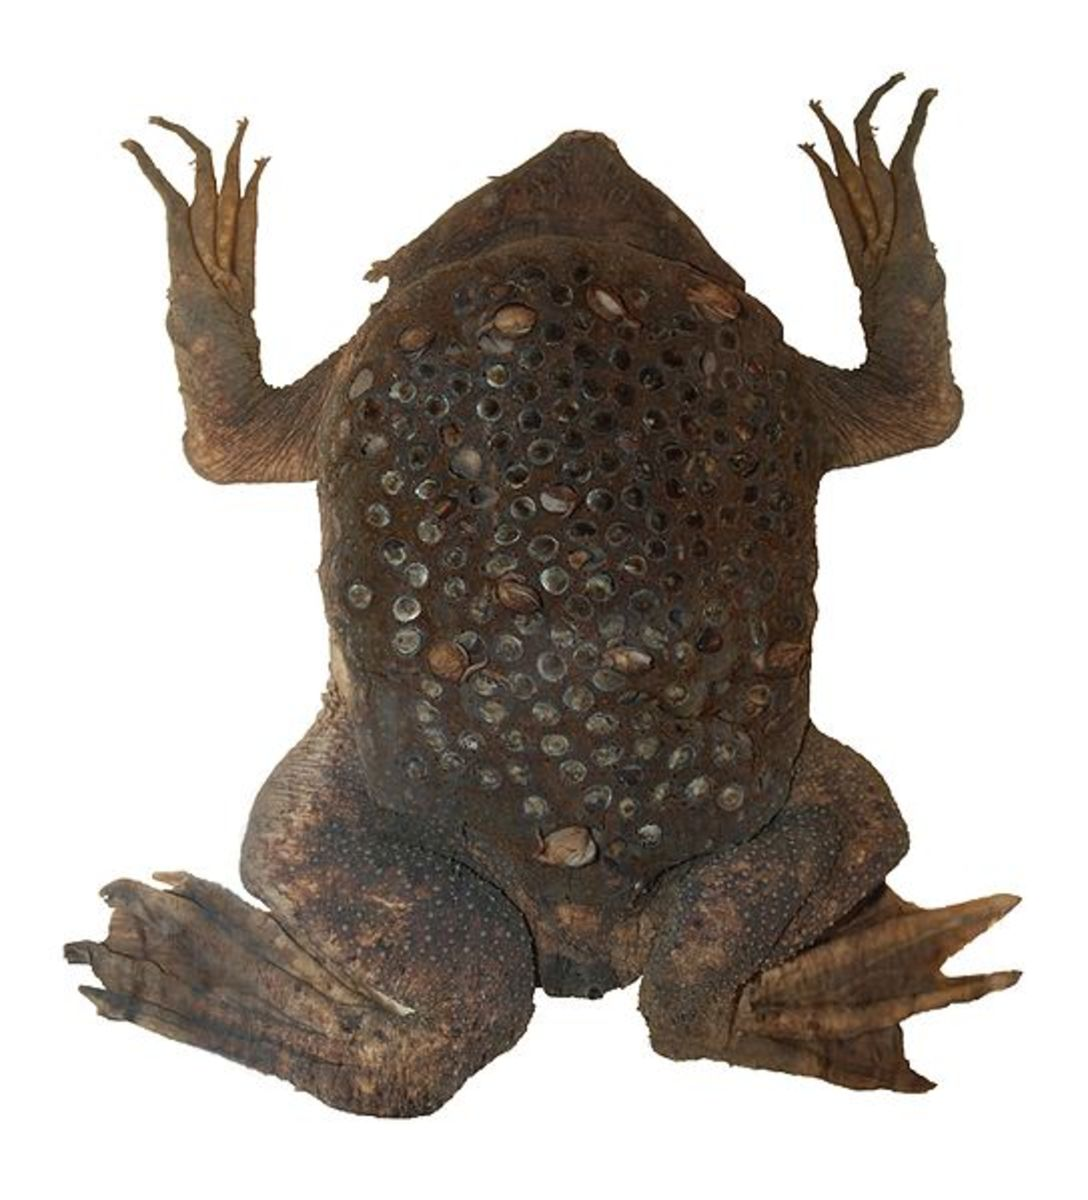 Surinam toad with eggs embedded in the skin